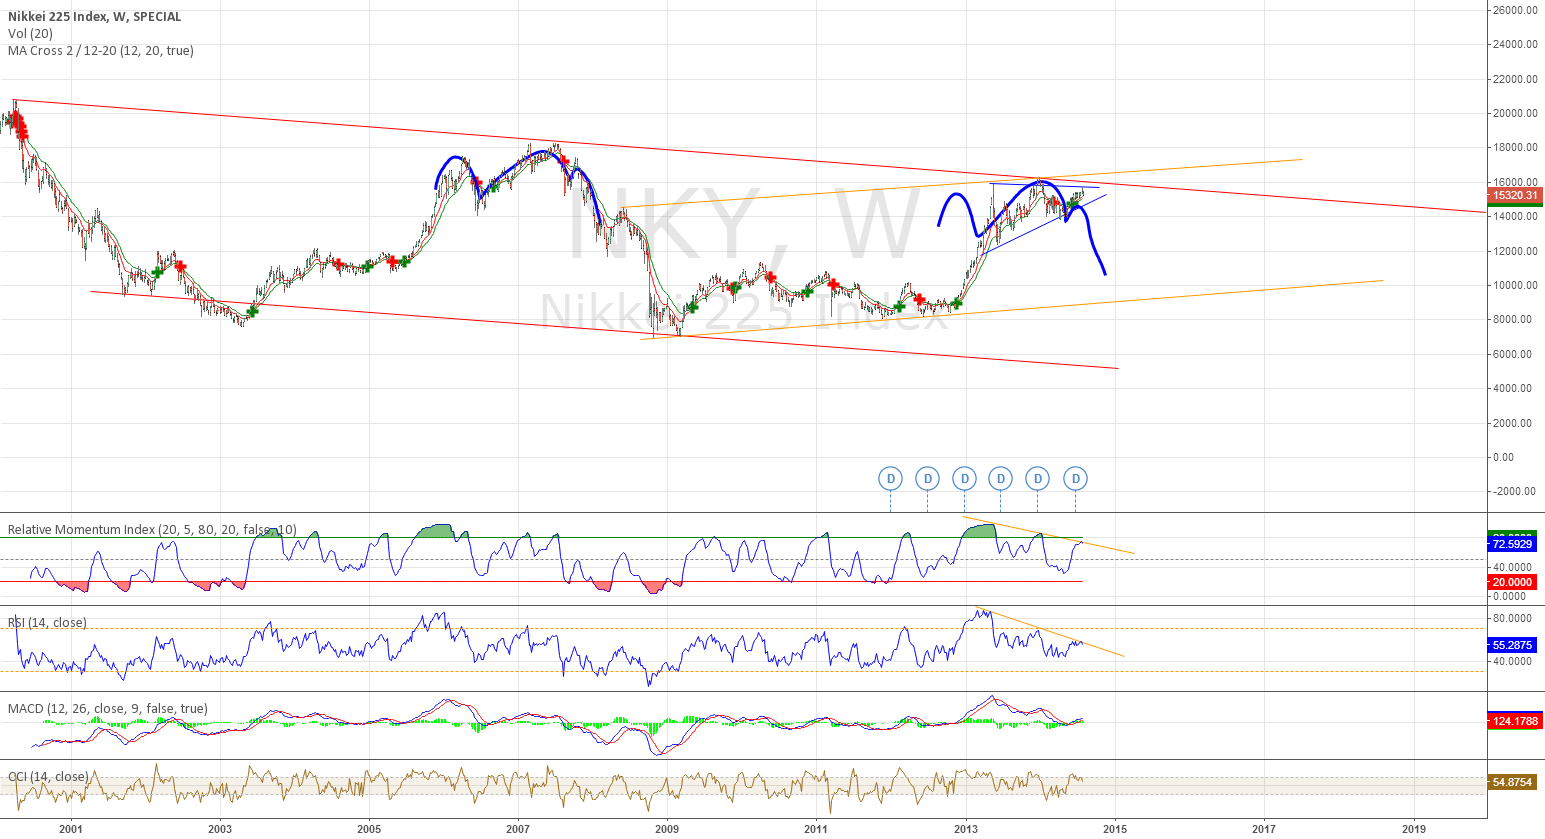 Nikkei setting up to go down again